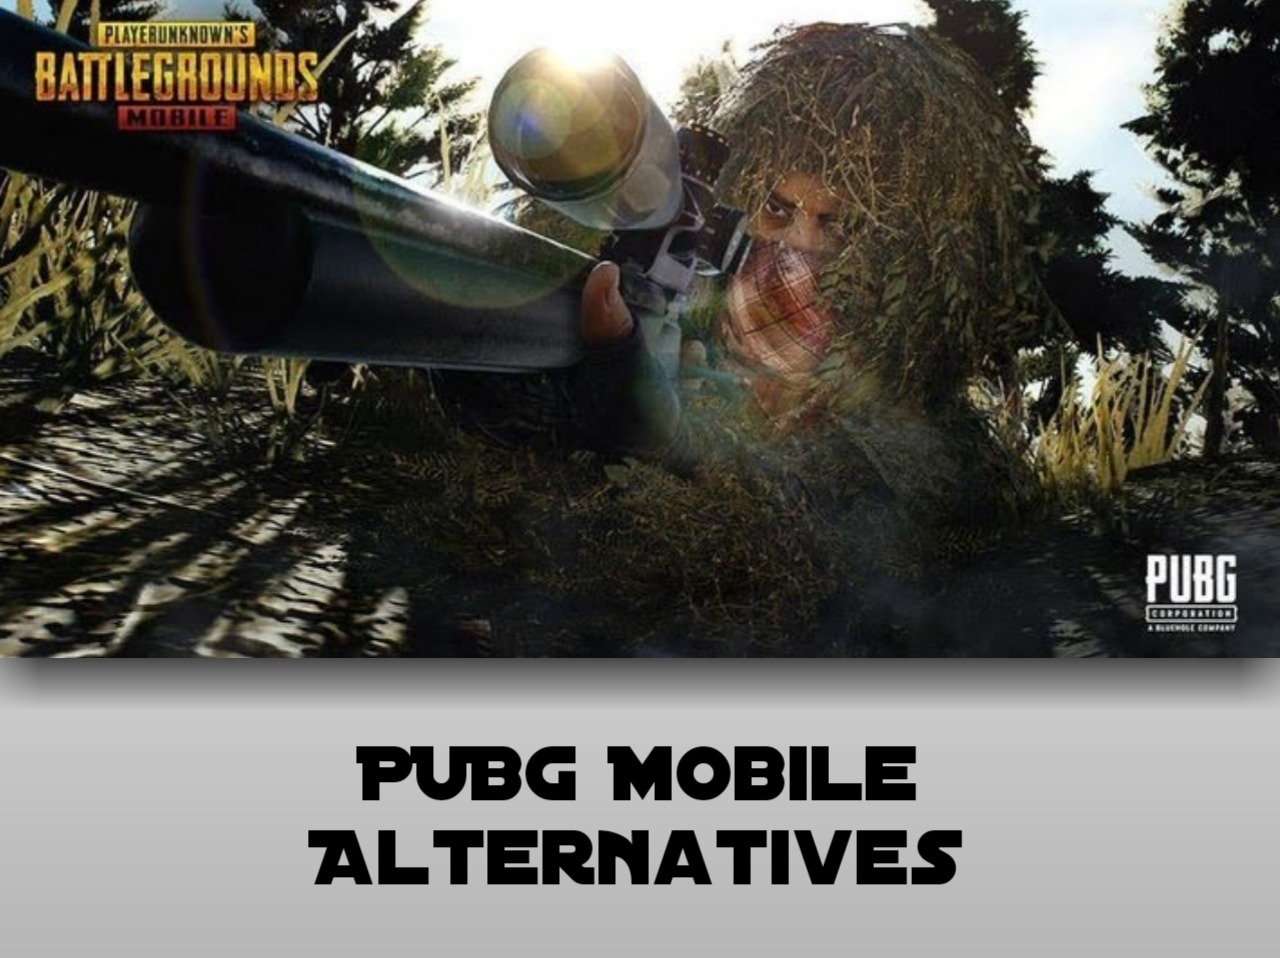 Pubg Free Alternative - Pubg Hack Source Code